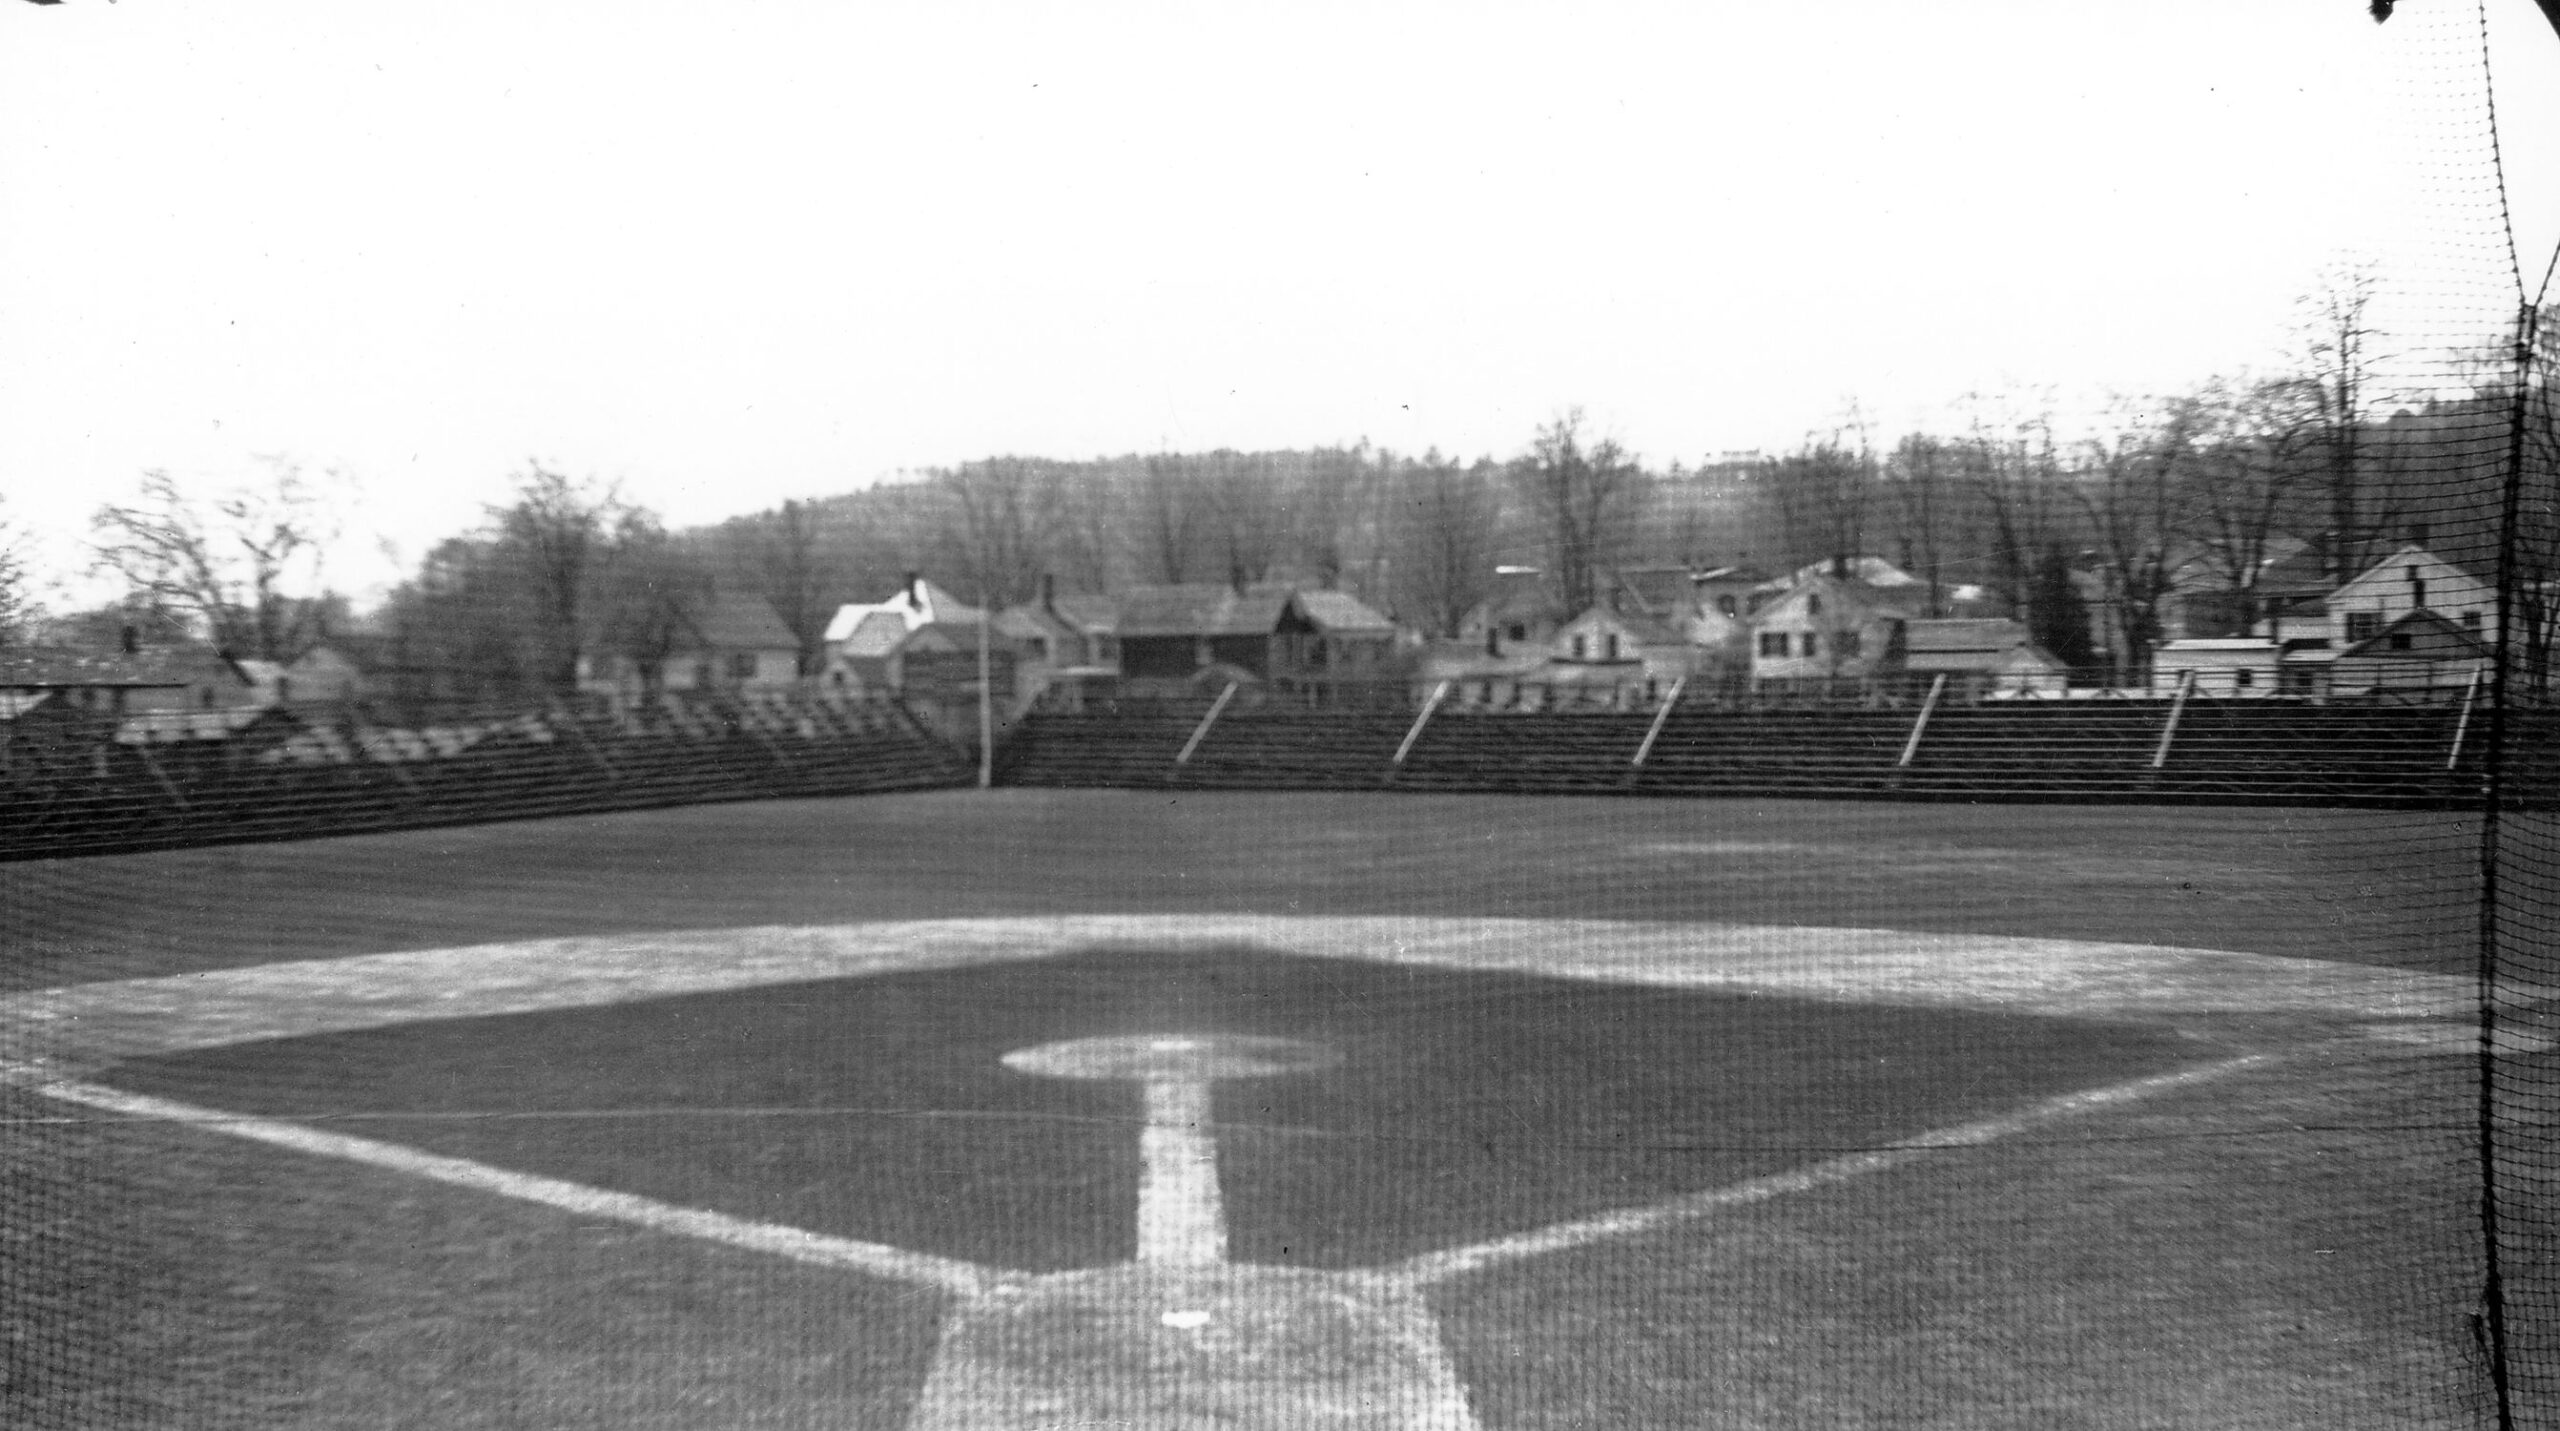 Doubleday Field during Induction.